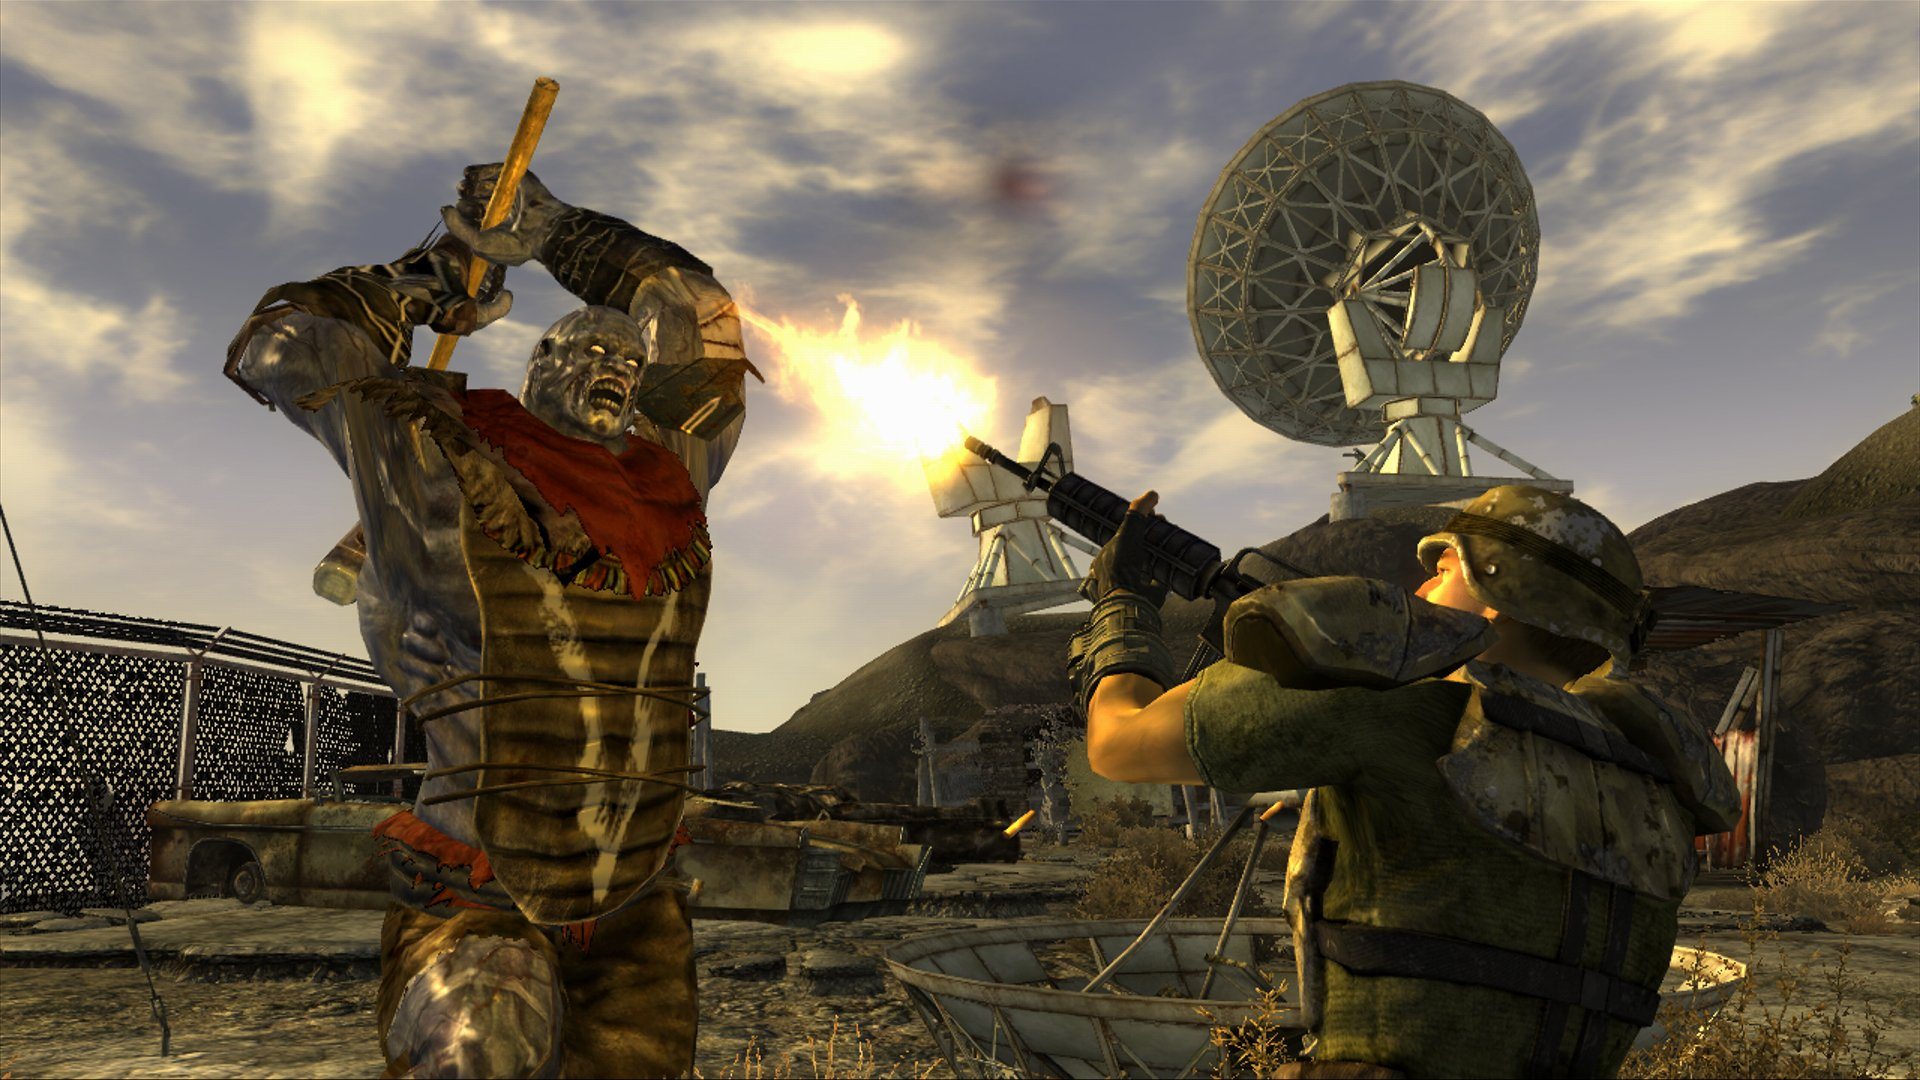 Primeras Screens de Fallout: New Vegas ... y se ven raritas [Screenshots]